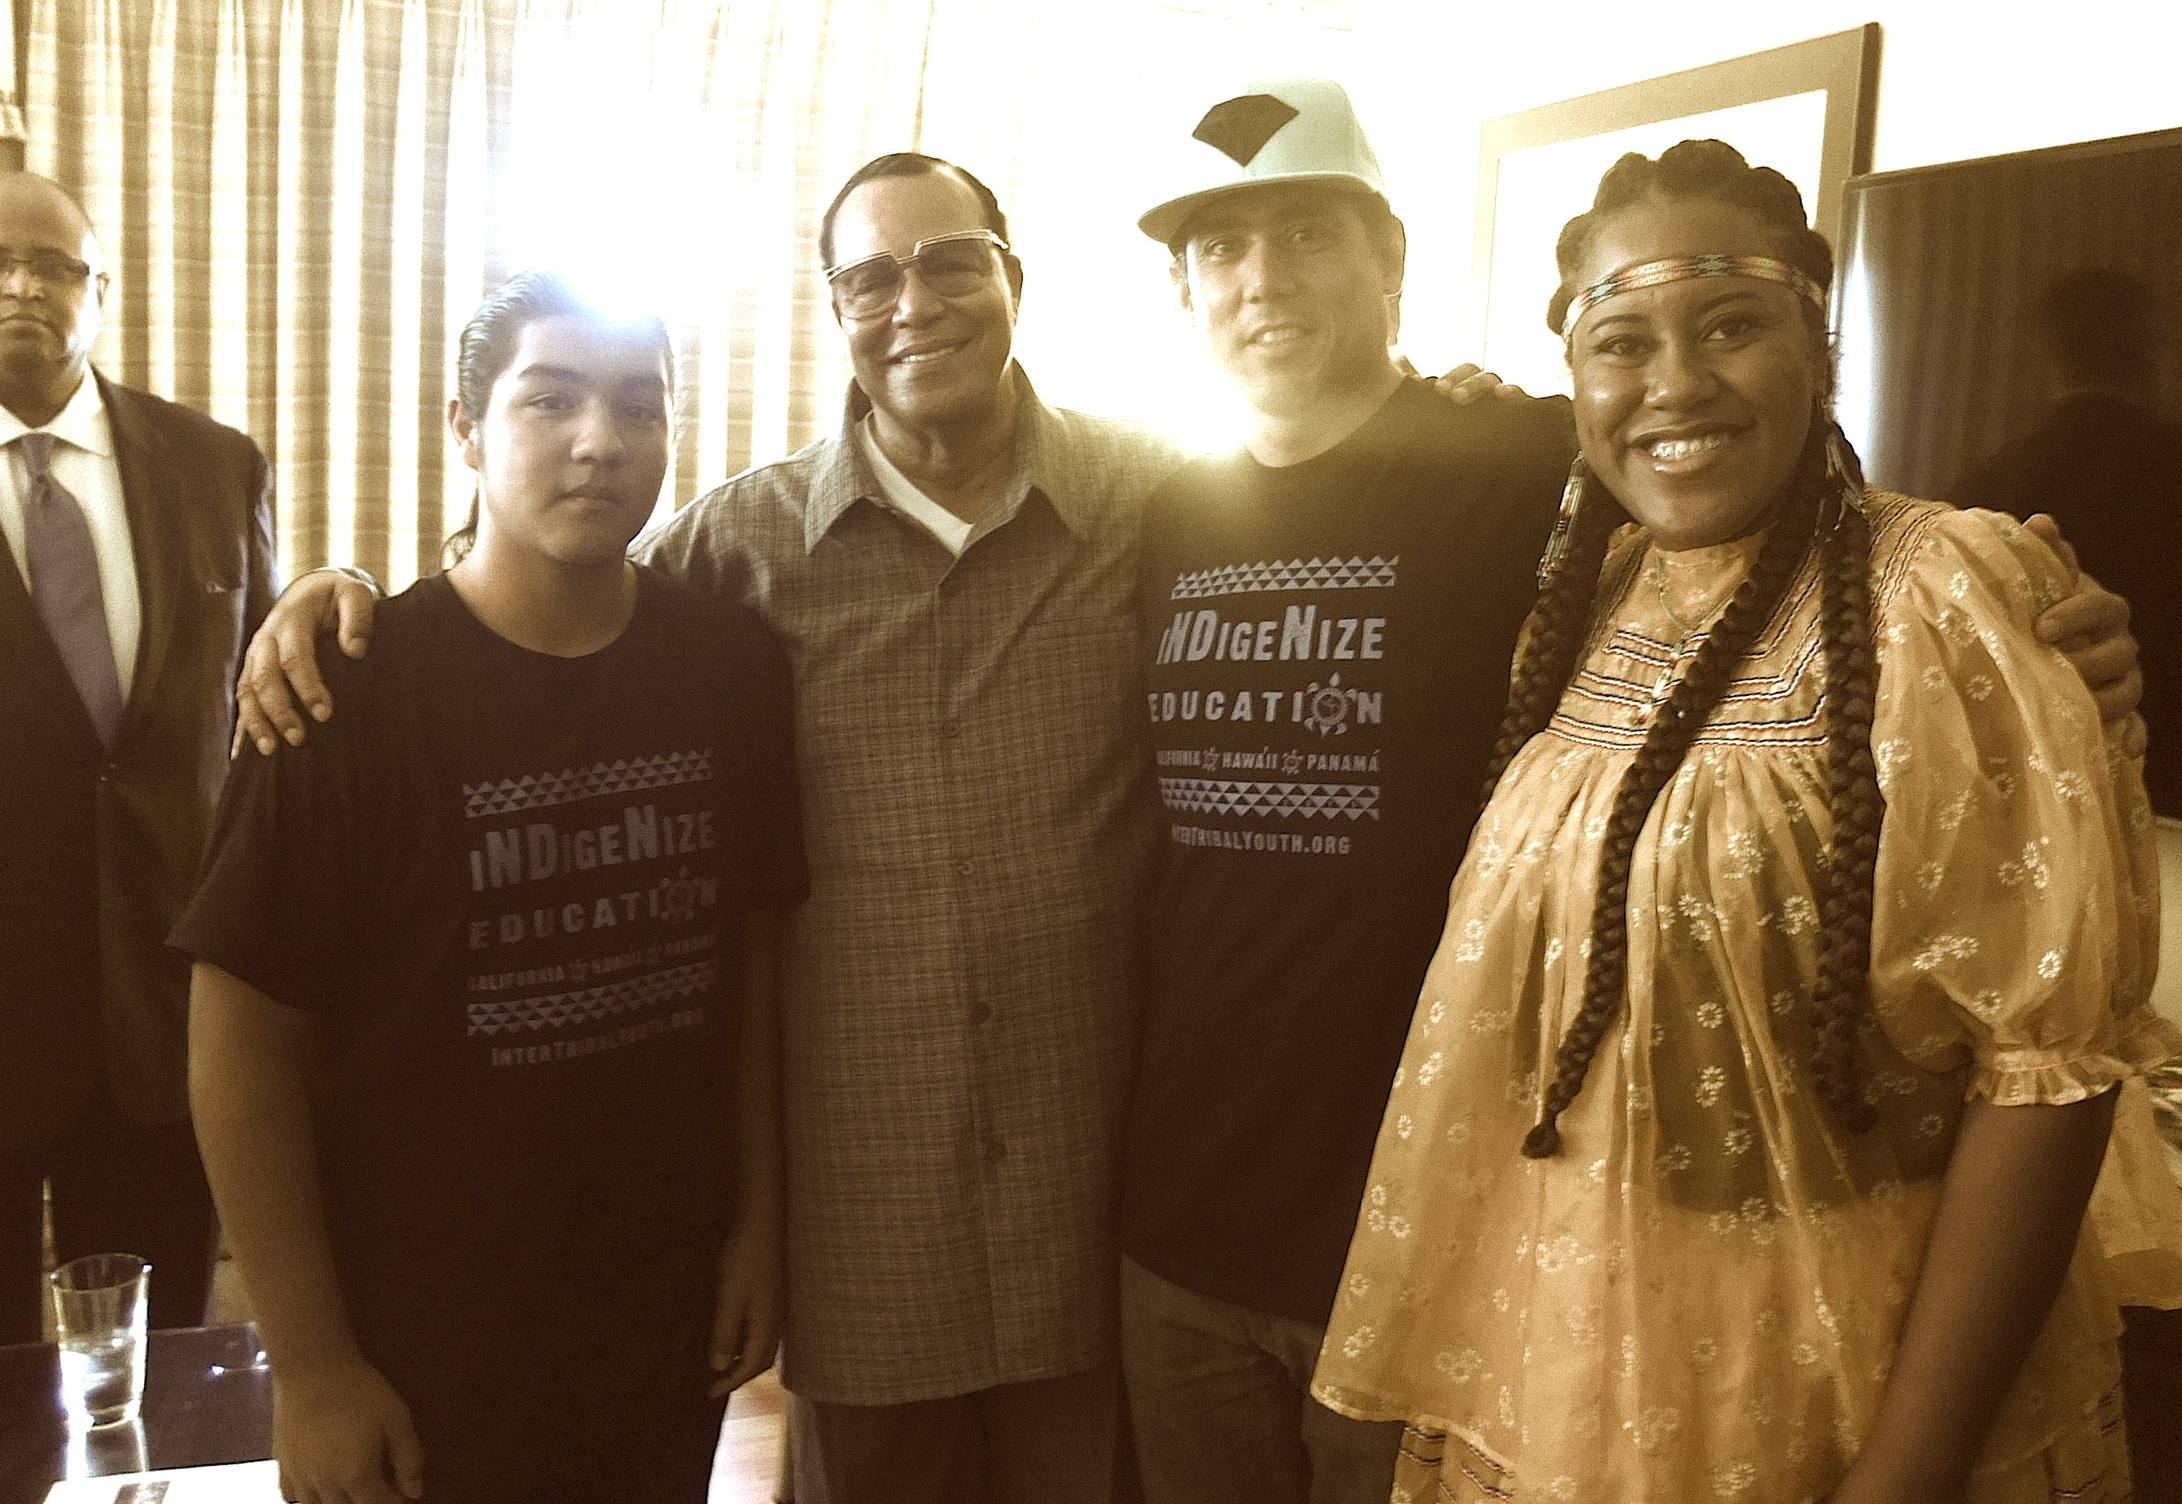 UNITY Keynote Hon. Minister Louis Farrakhan morning meeting with ITY Youth Tim Siva (Agua Caliente), ITY Director, Marc Chavez, and Native Latino organizer Yonasda Hill (Lakota) , at National Unity 2015.